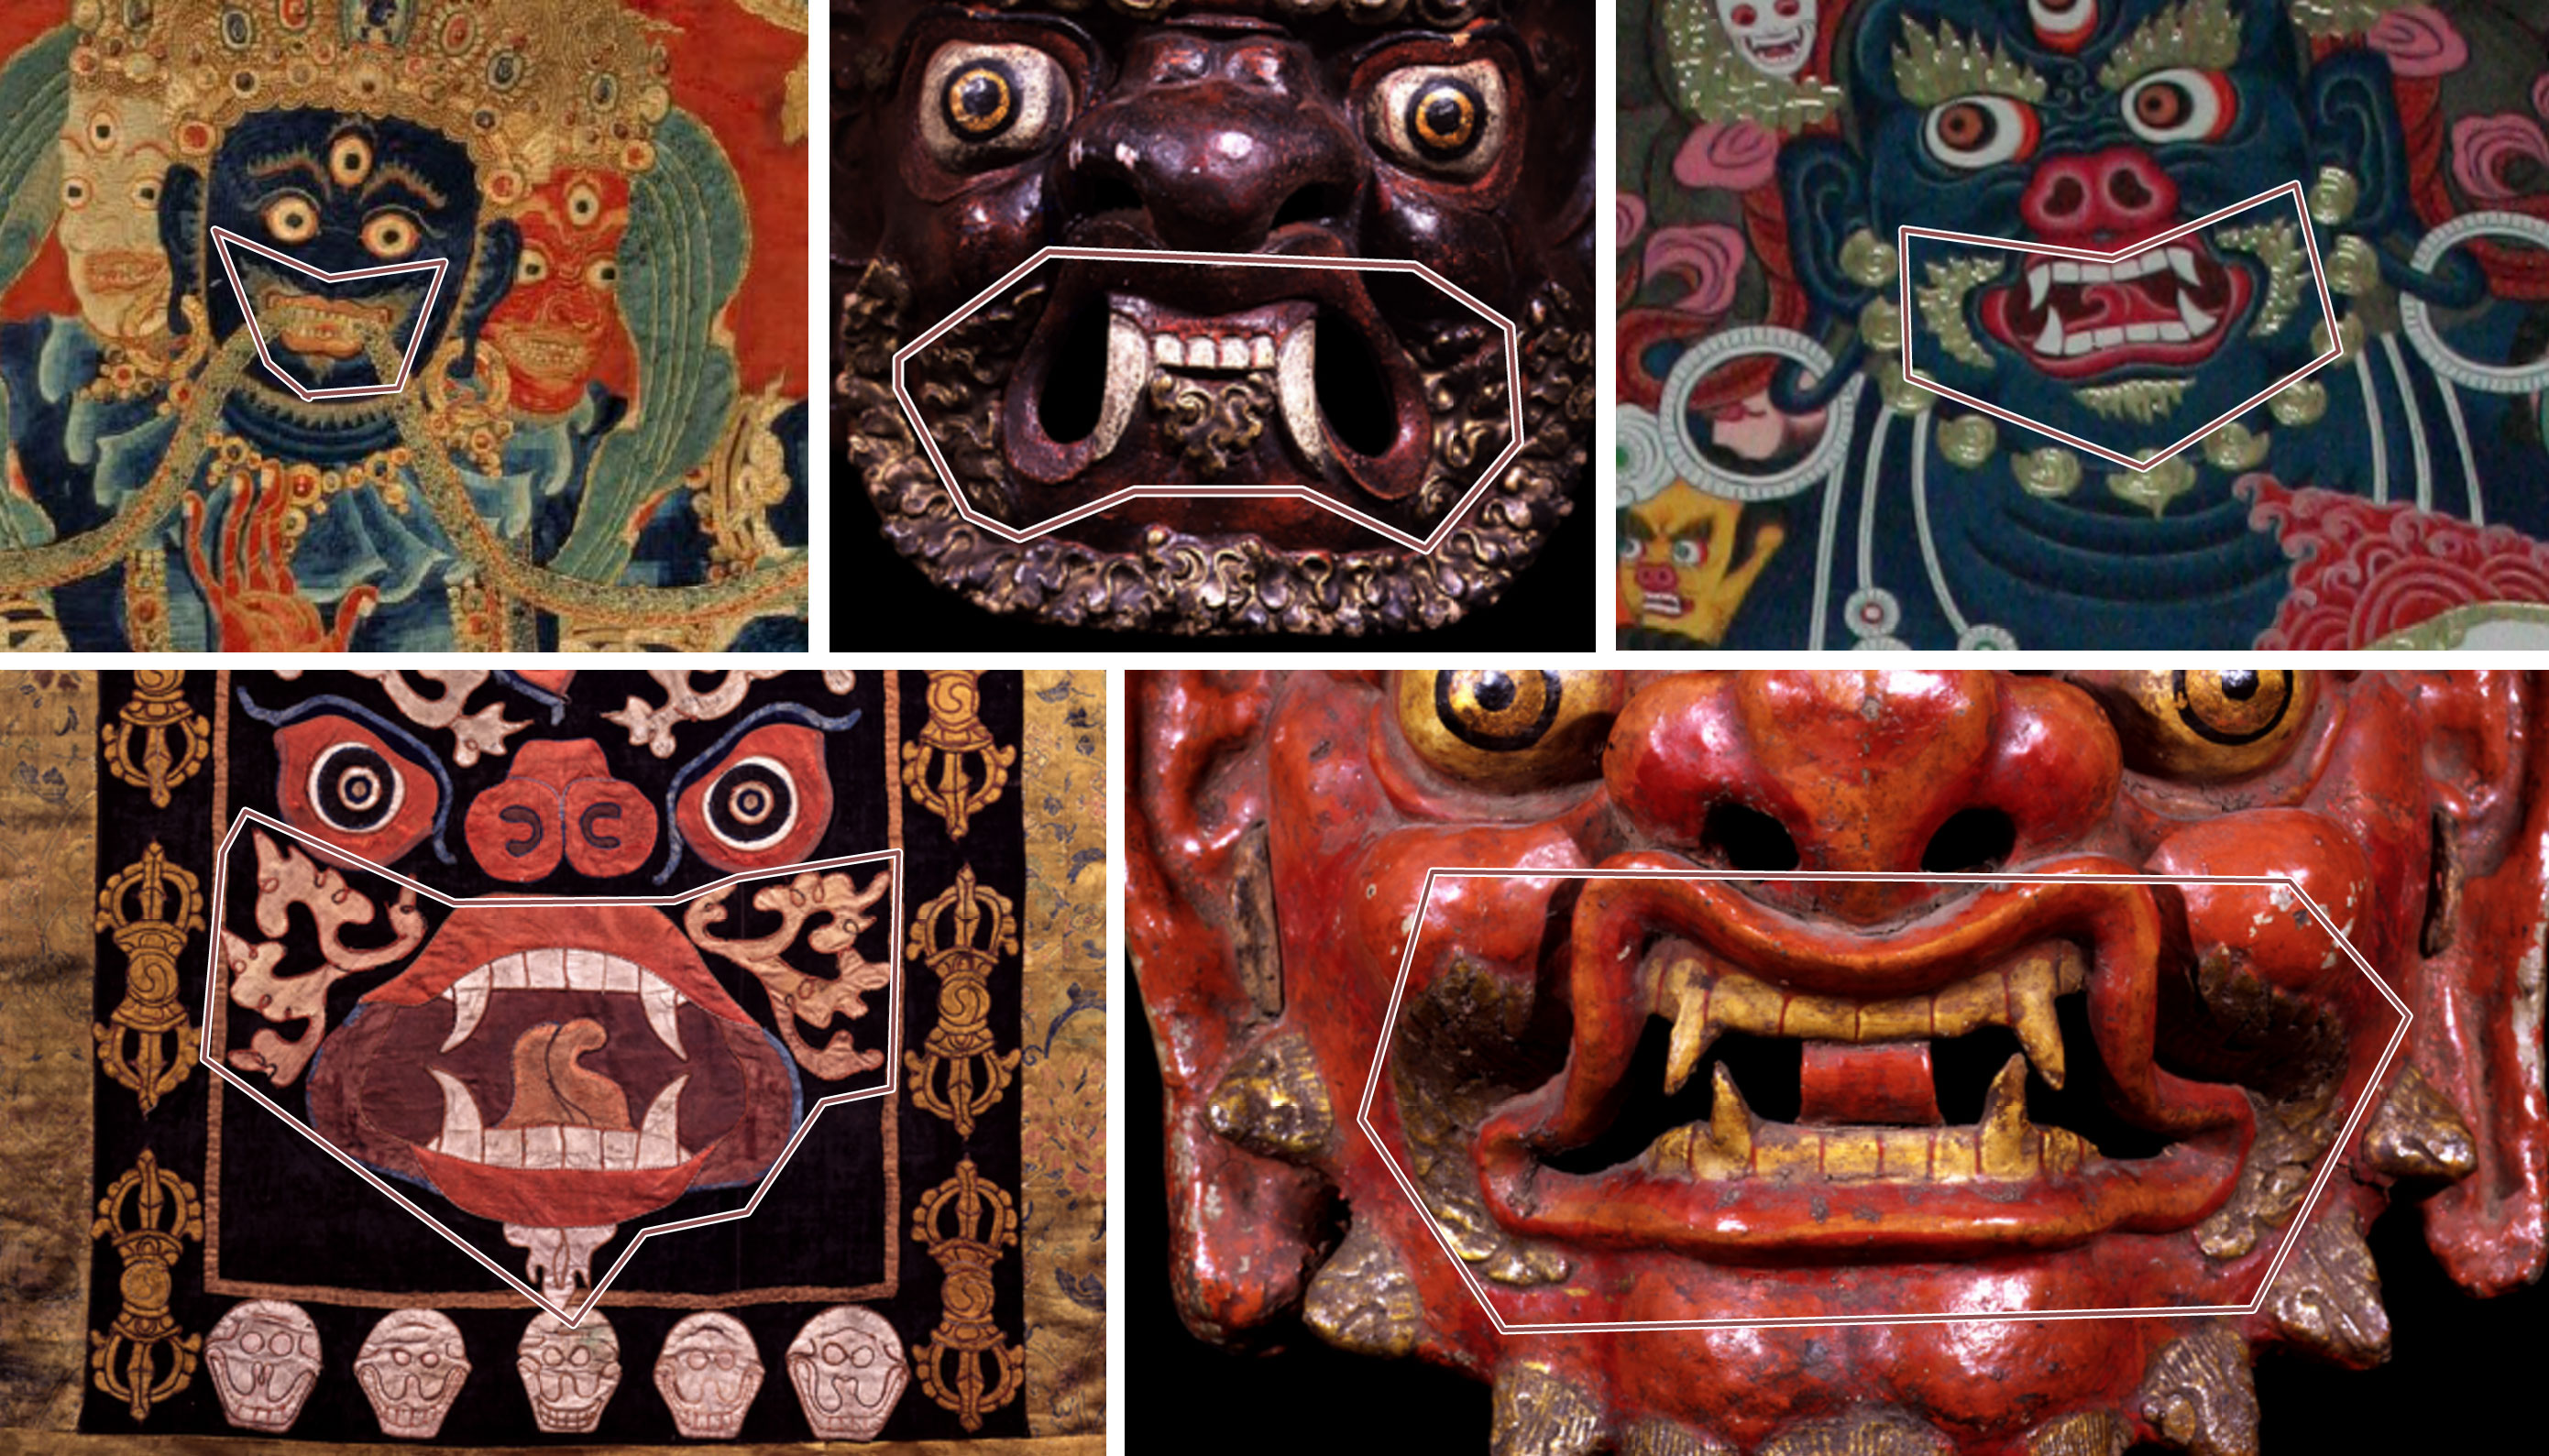 Flames around mouth examples